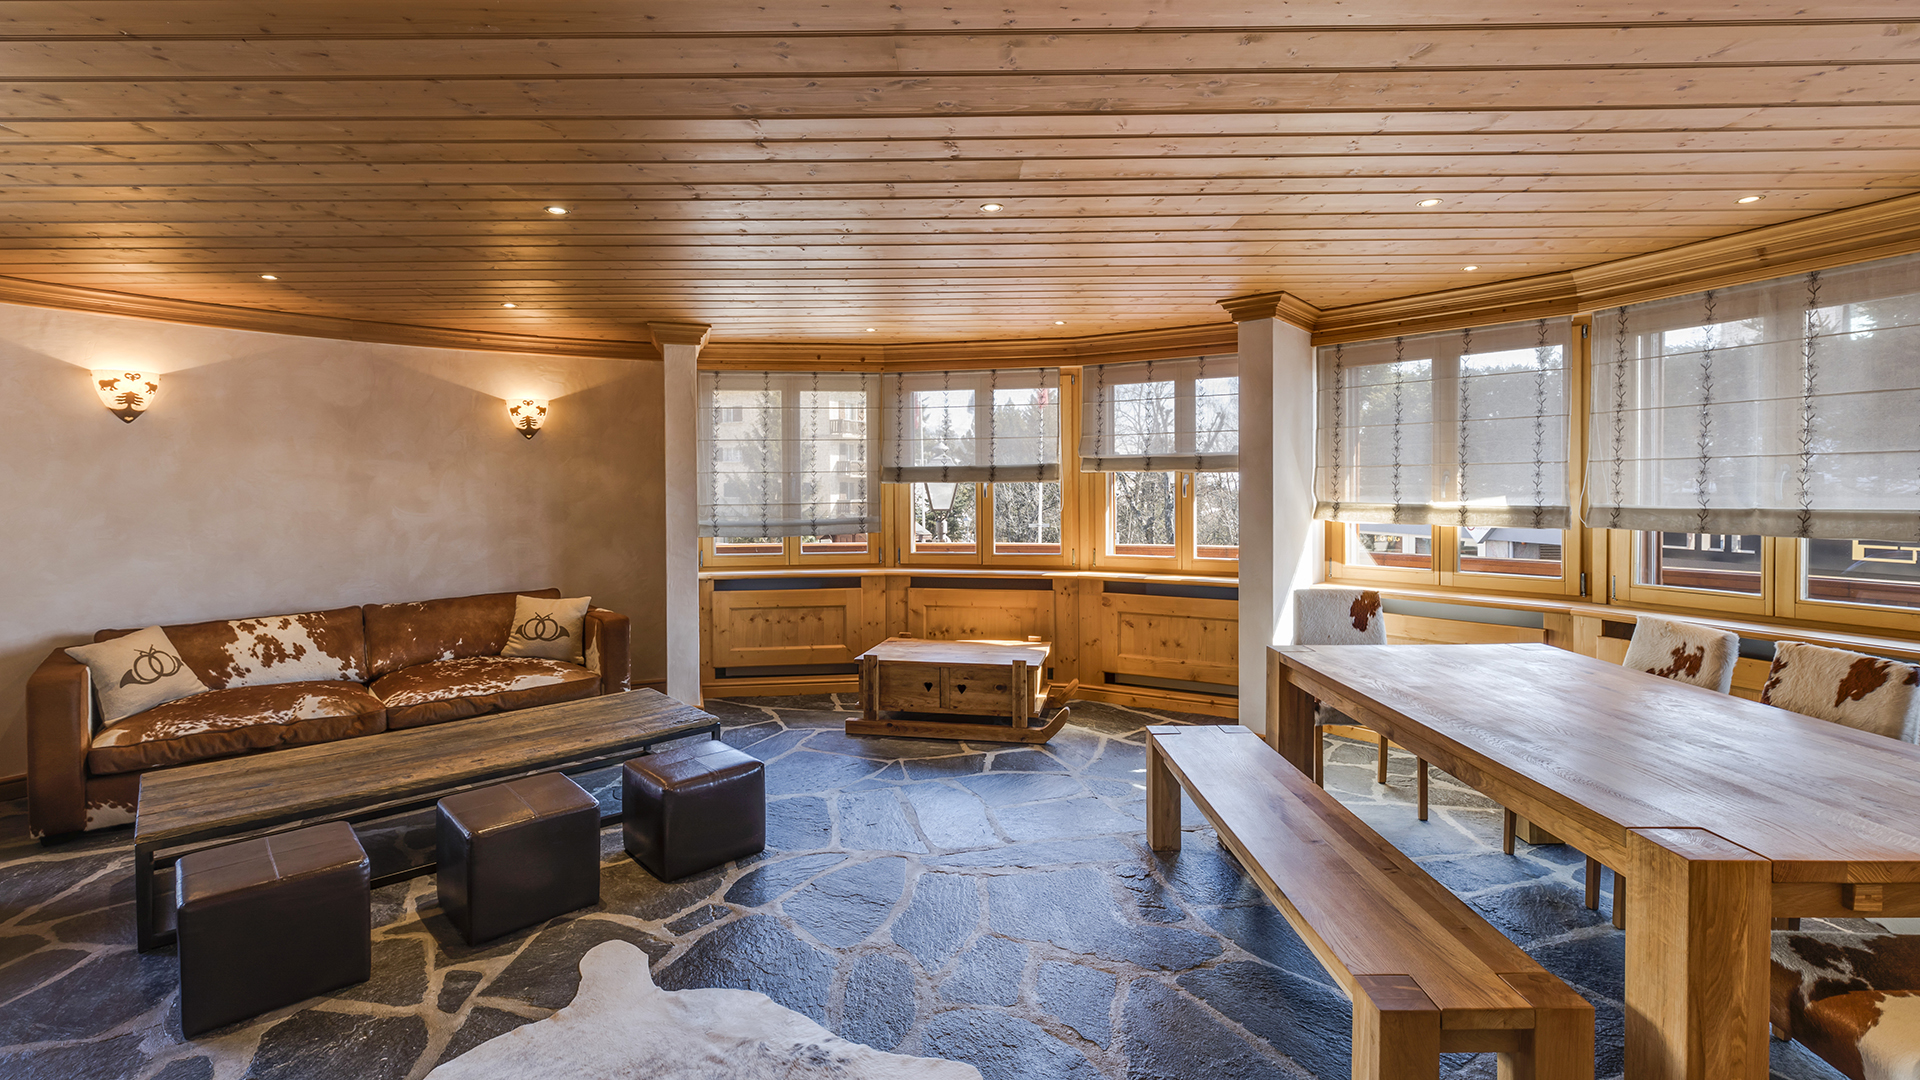 Le Couer de Crans Apartments, Switzerland